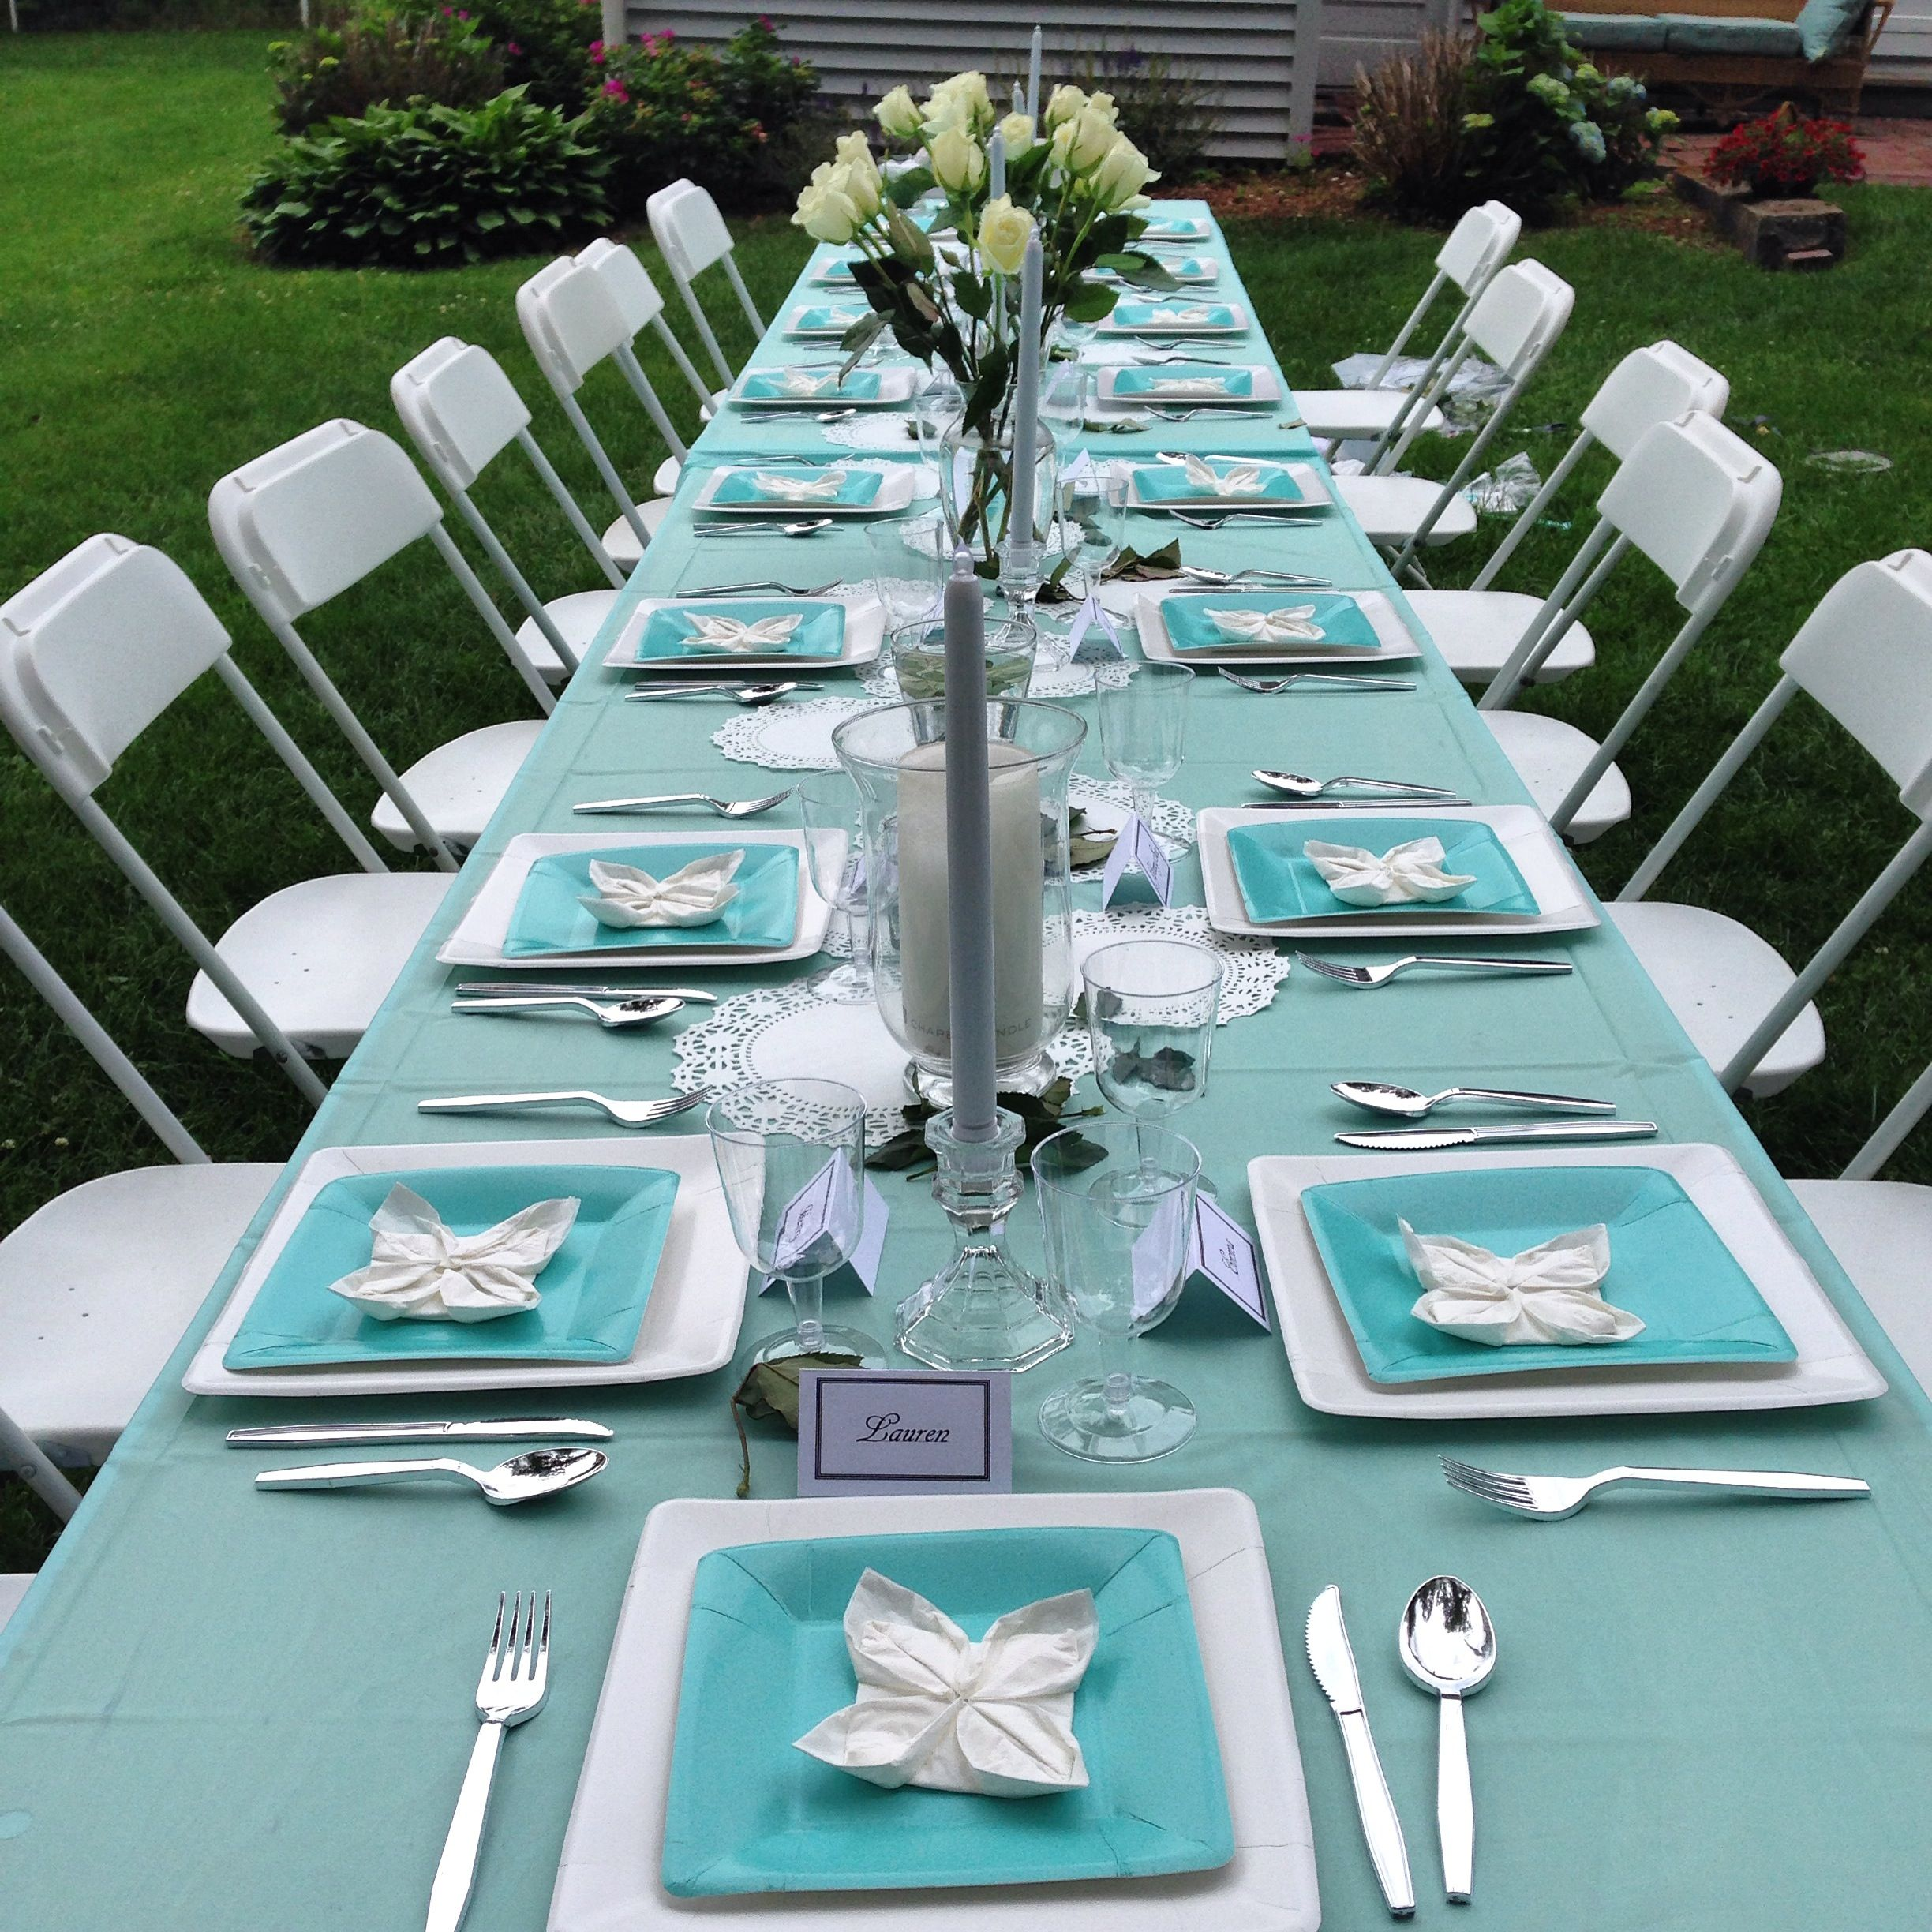 Table Setting From My Breakfast At Tiffany S Inspired Graduation